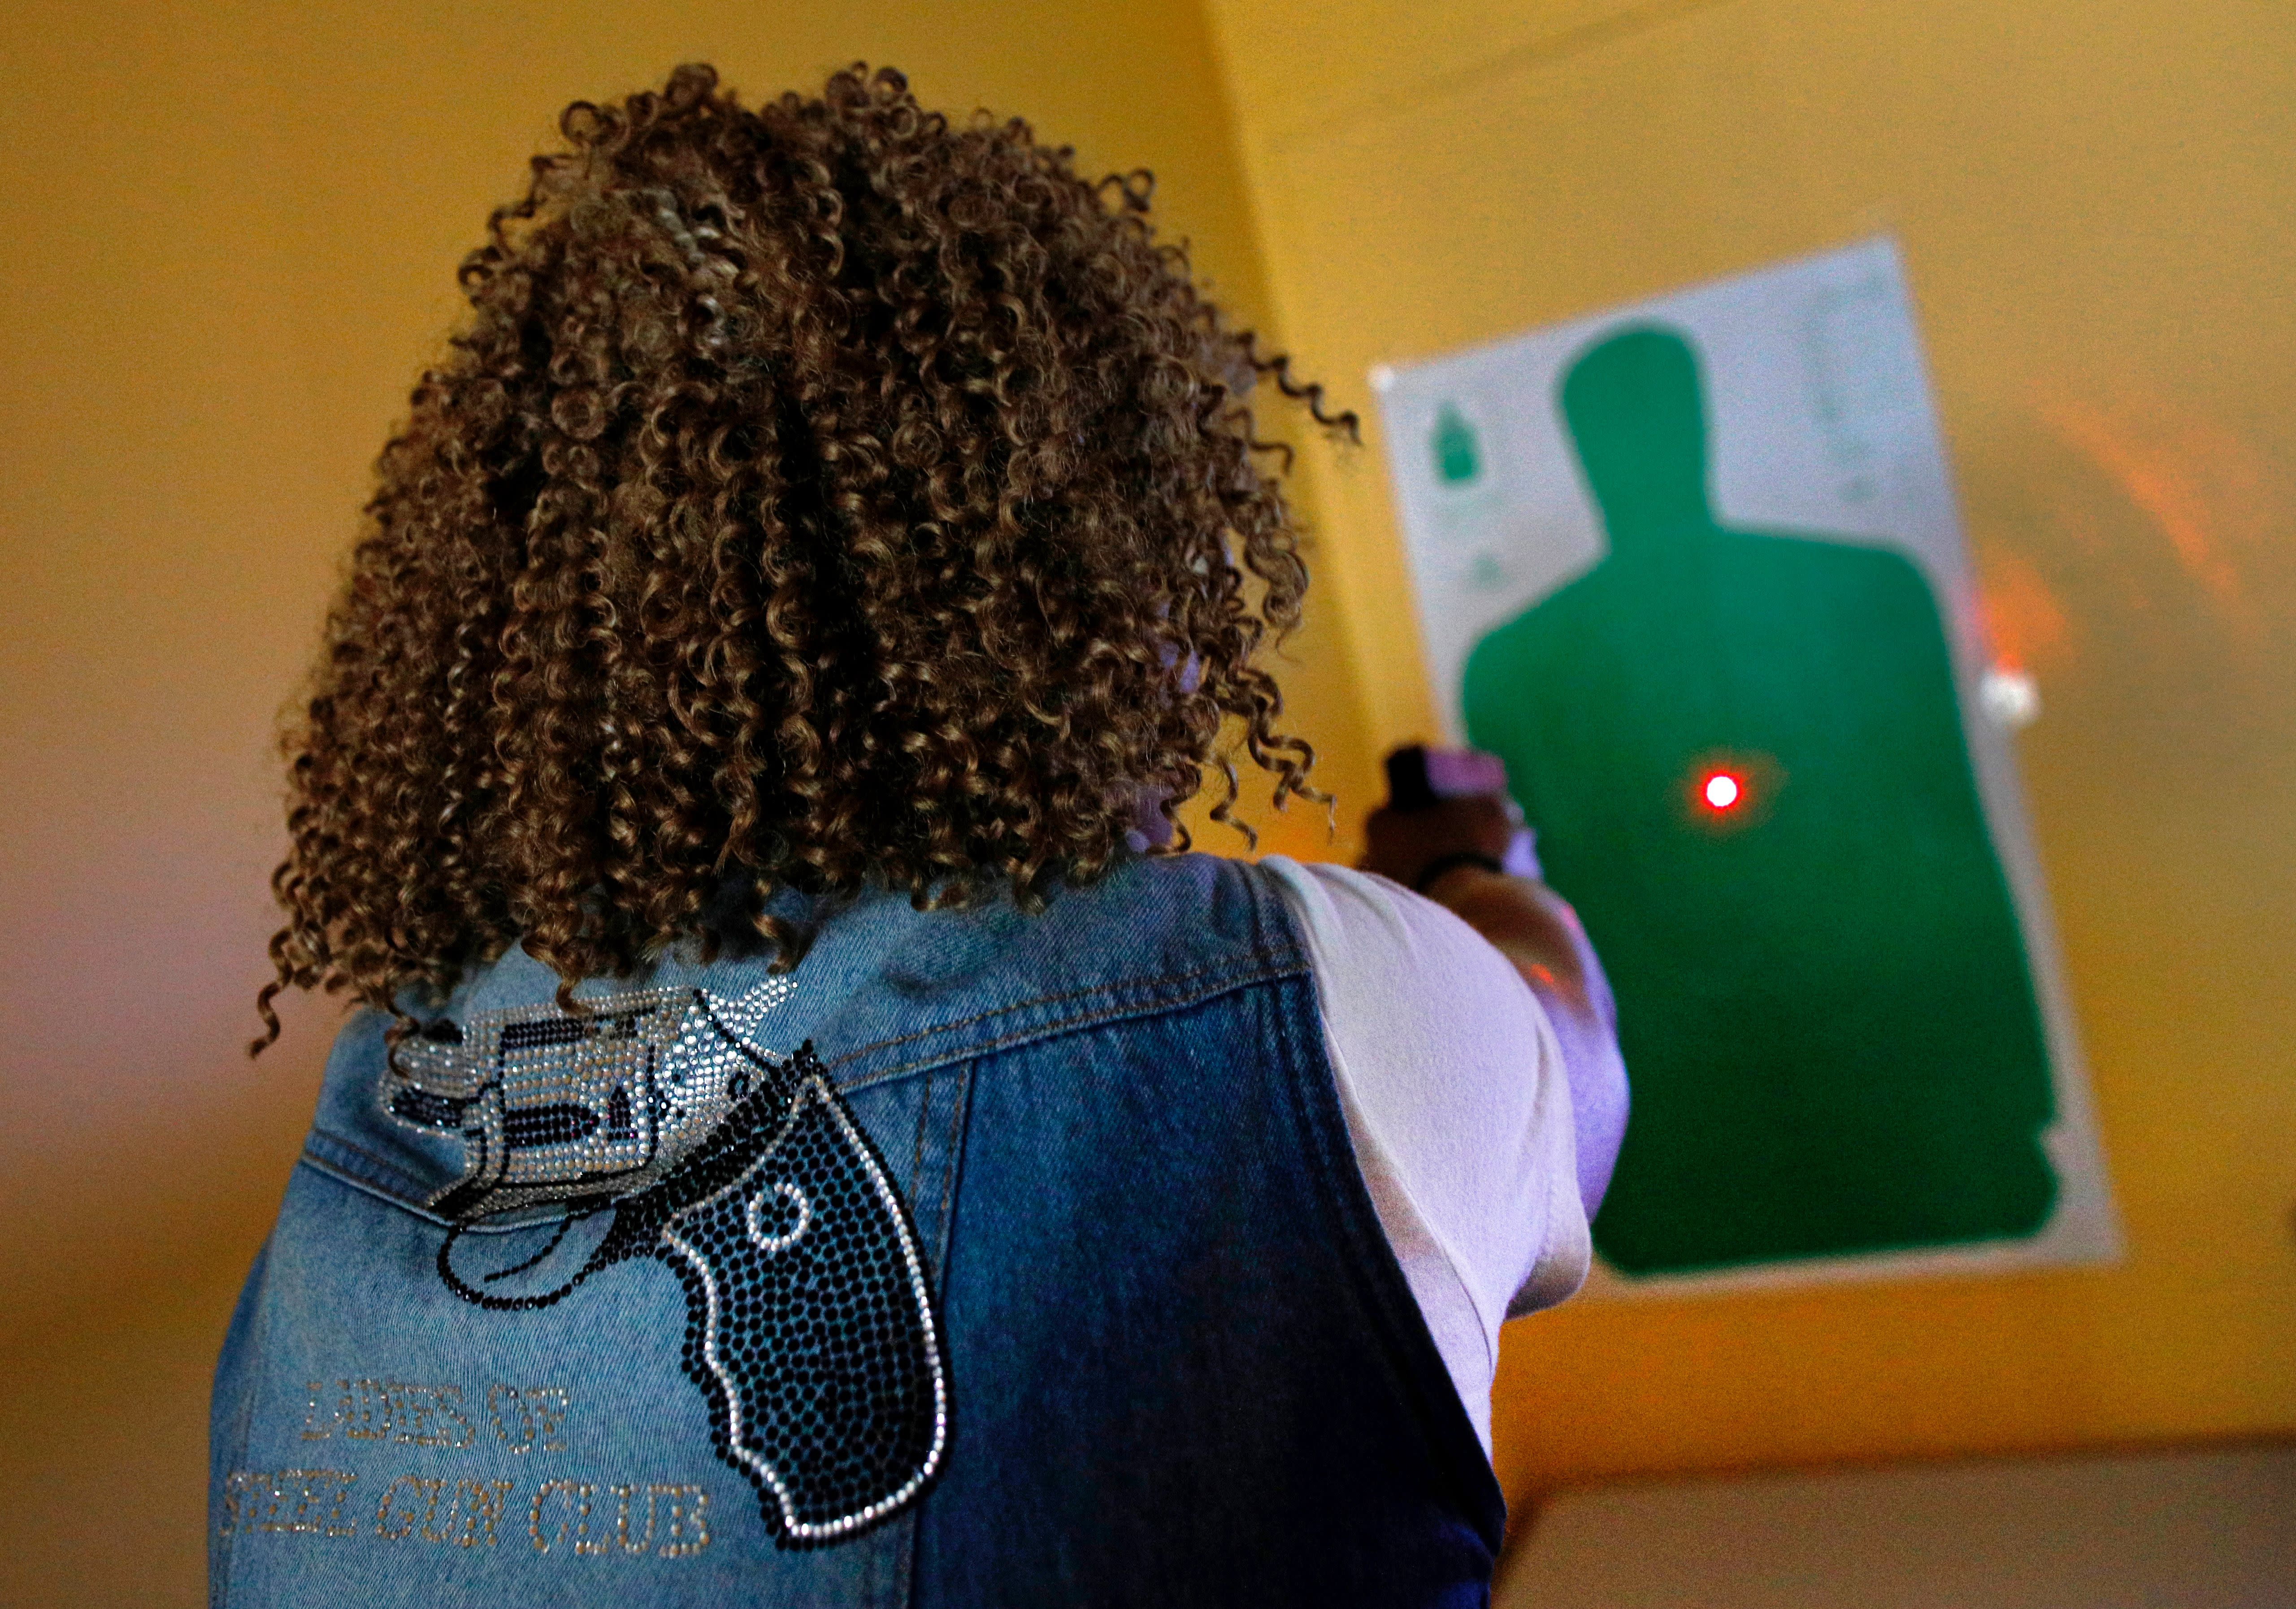 Me, My Liberal Wife and What Happened When We Went to a Gun Range